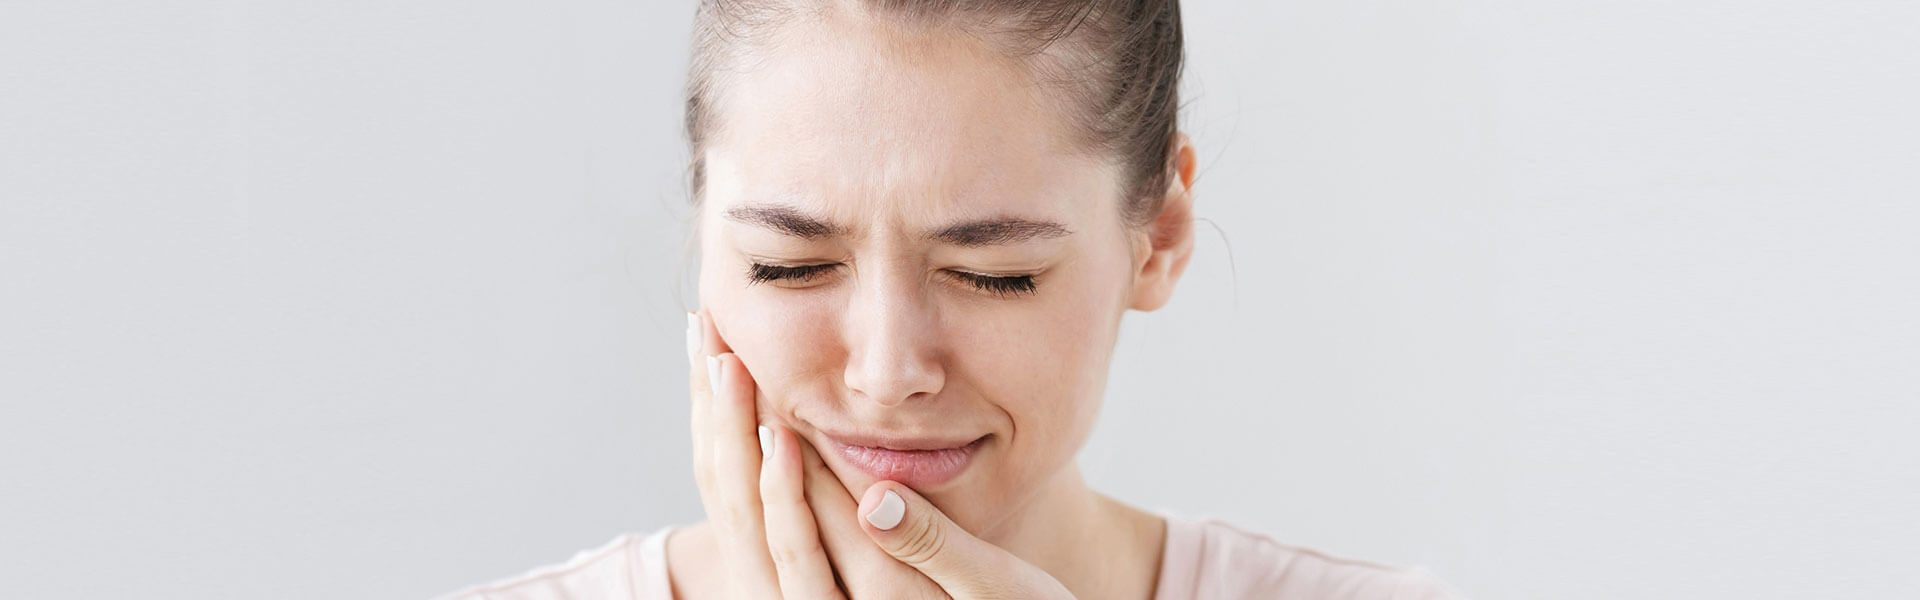 What Are The Most Common Dental Emergencies?